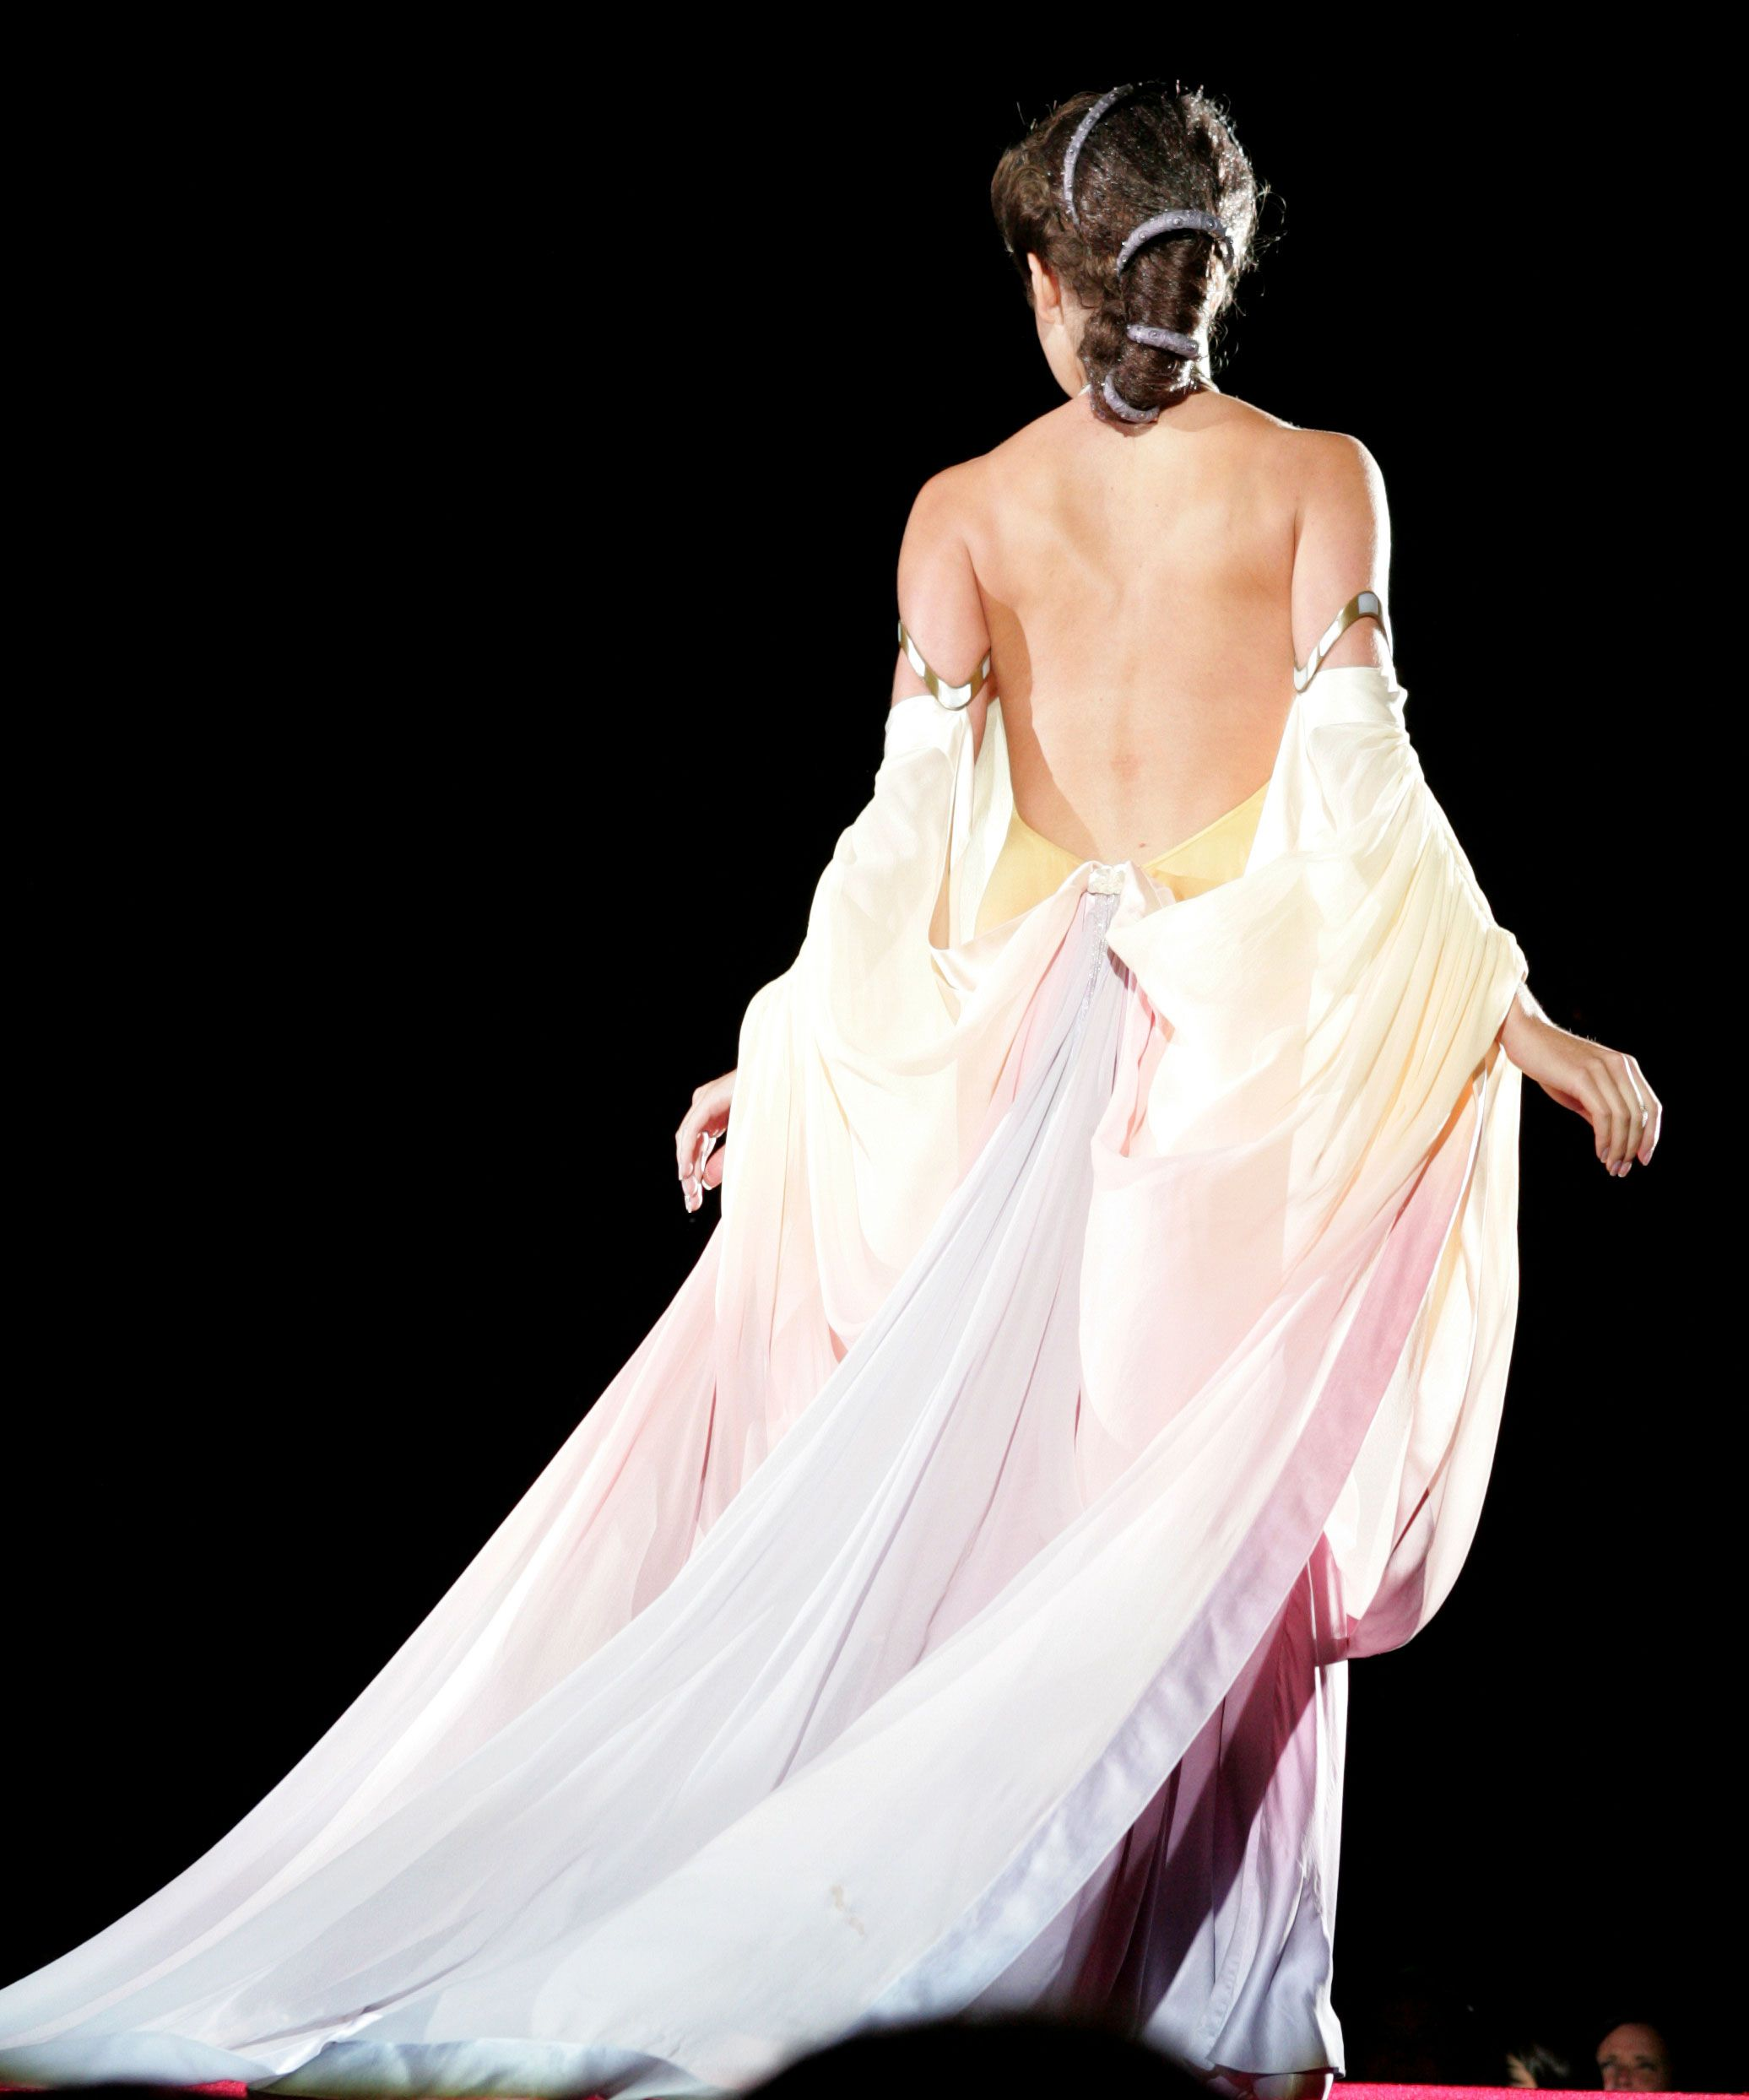 Wedding Dance Star Wars: I See This As A Star Wars Wedding Dress. It's Absolutely